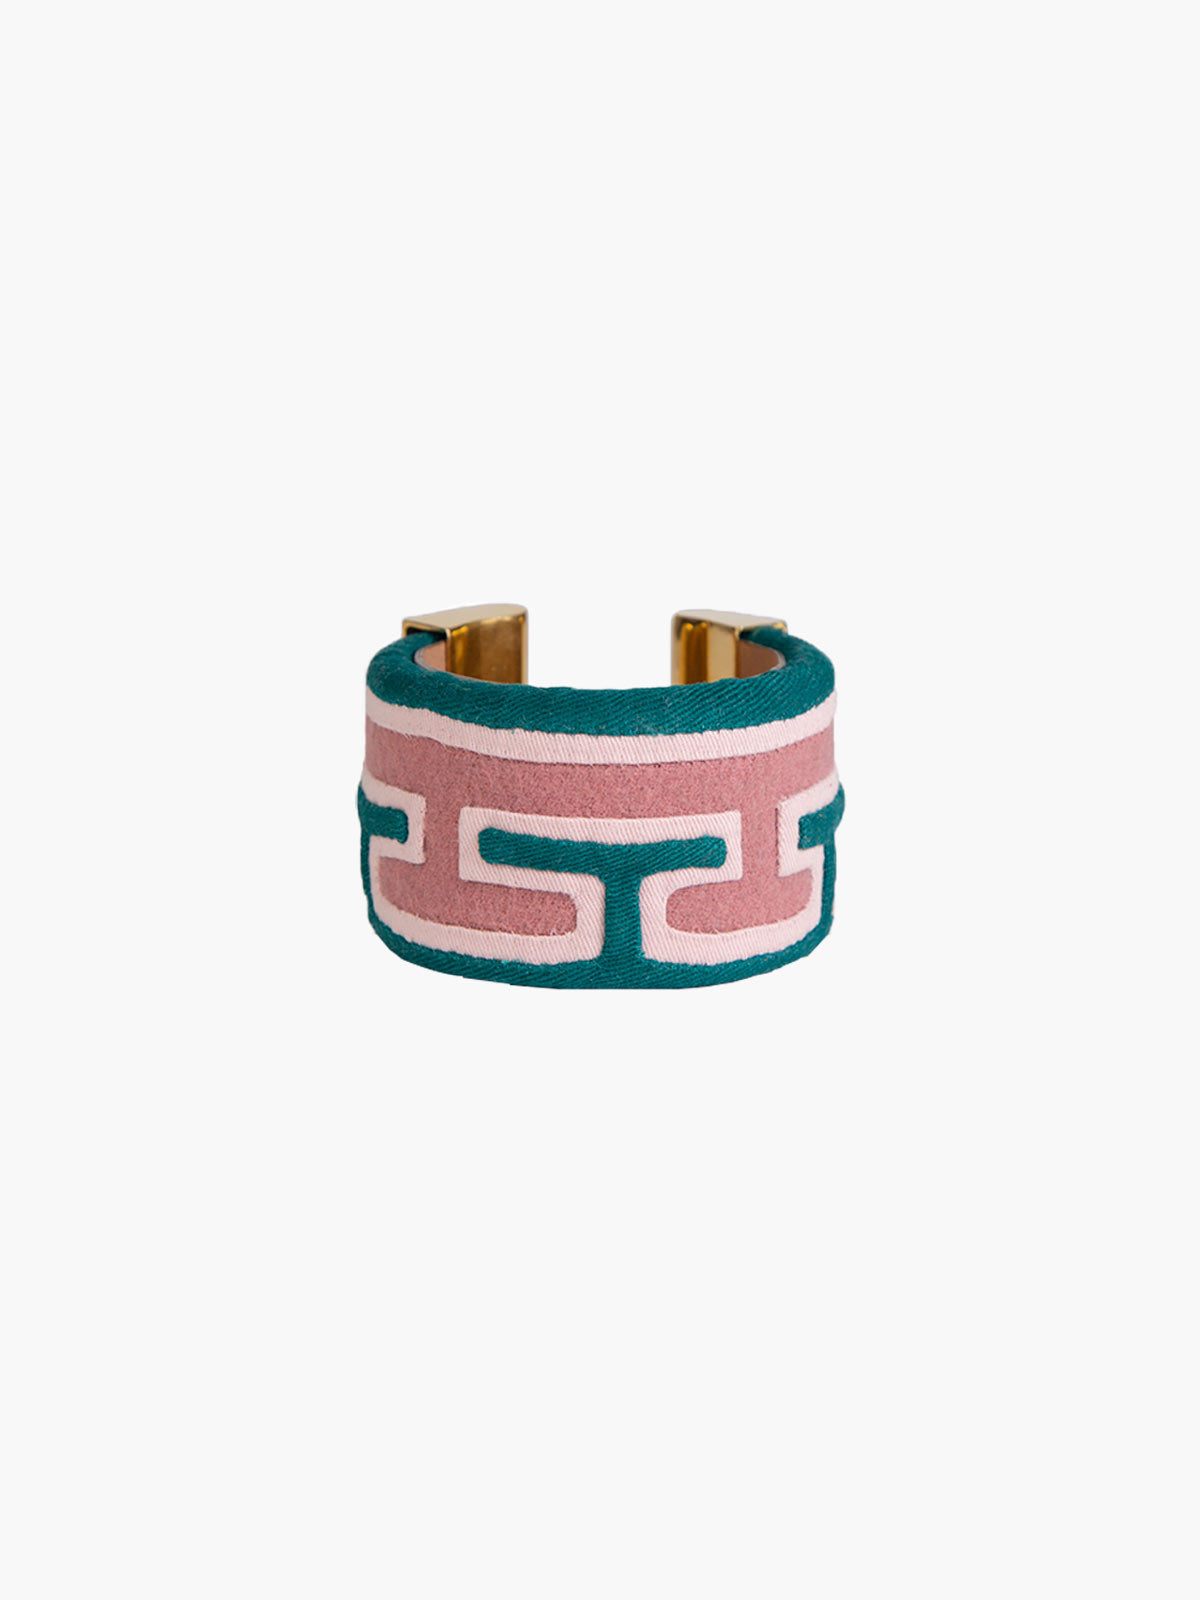 Paseo Alto Kuna Bracelet | Jungle